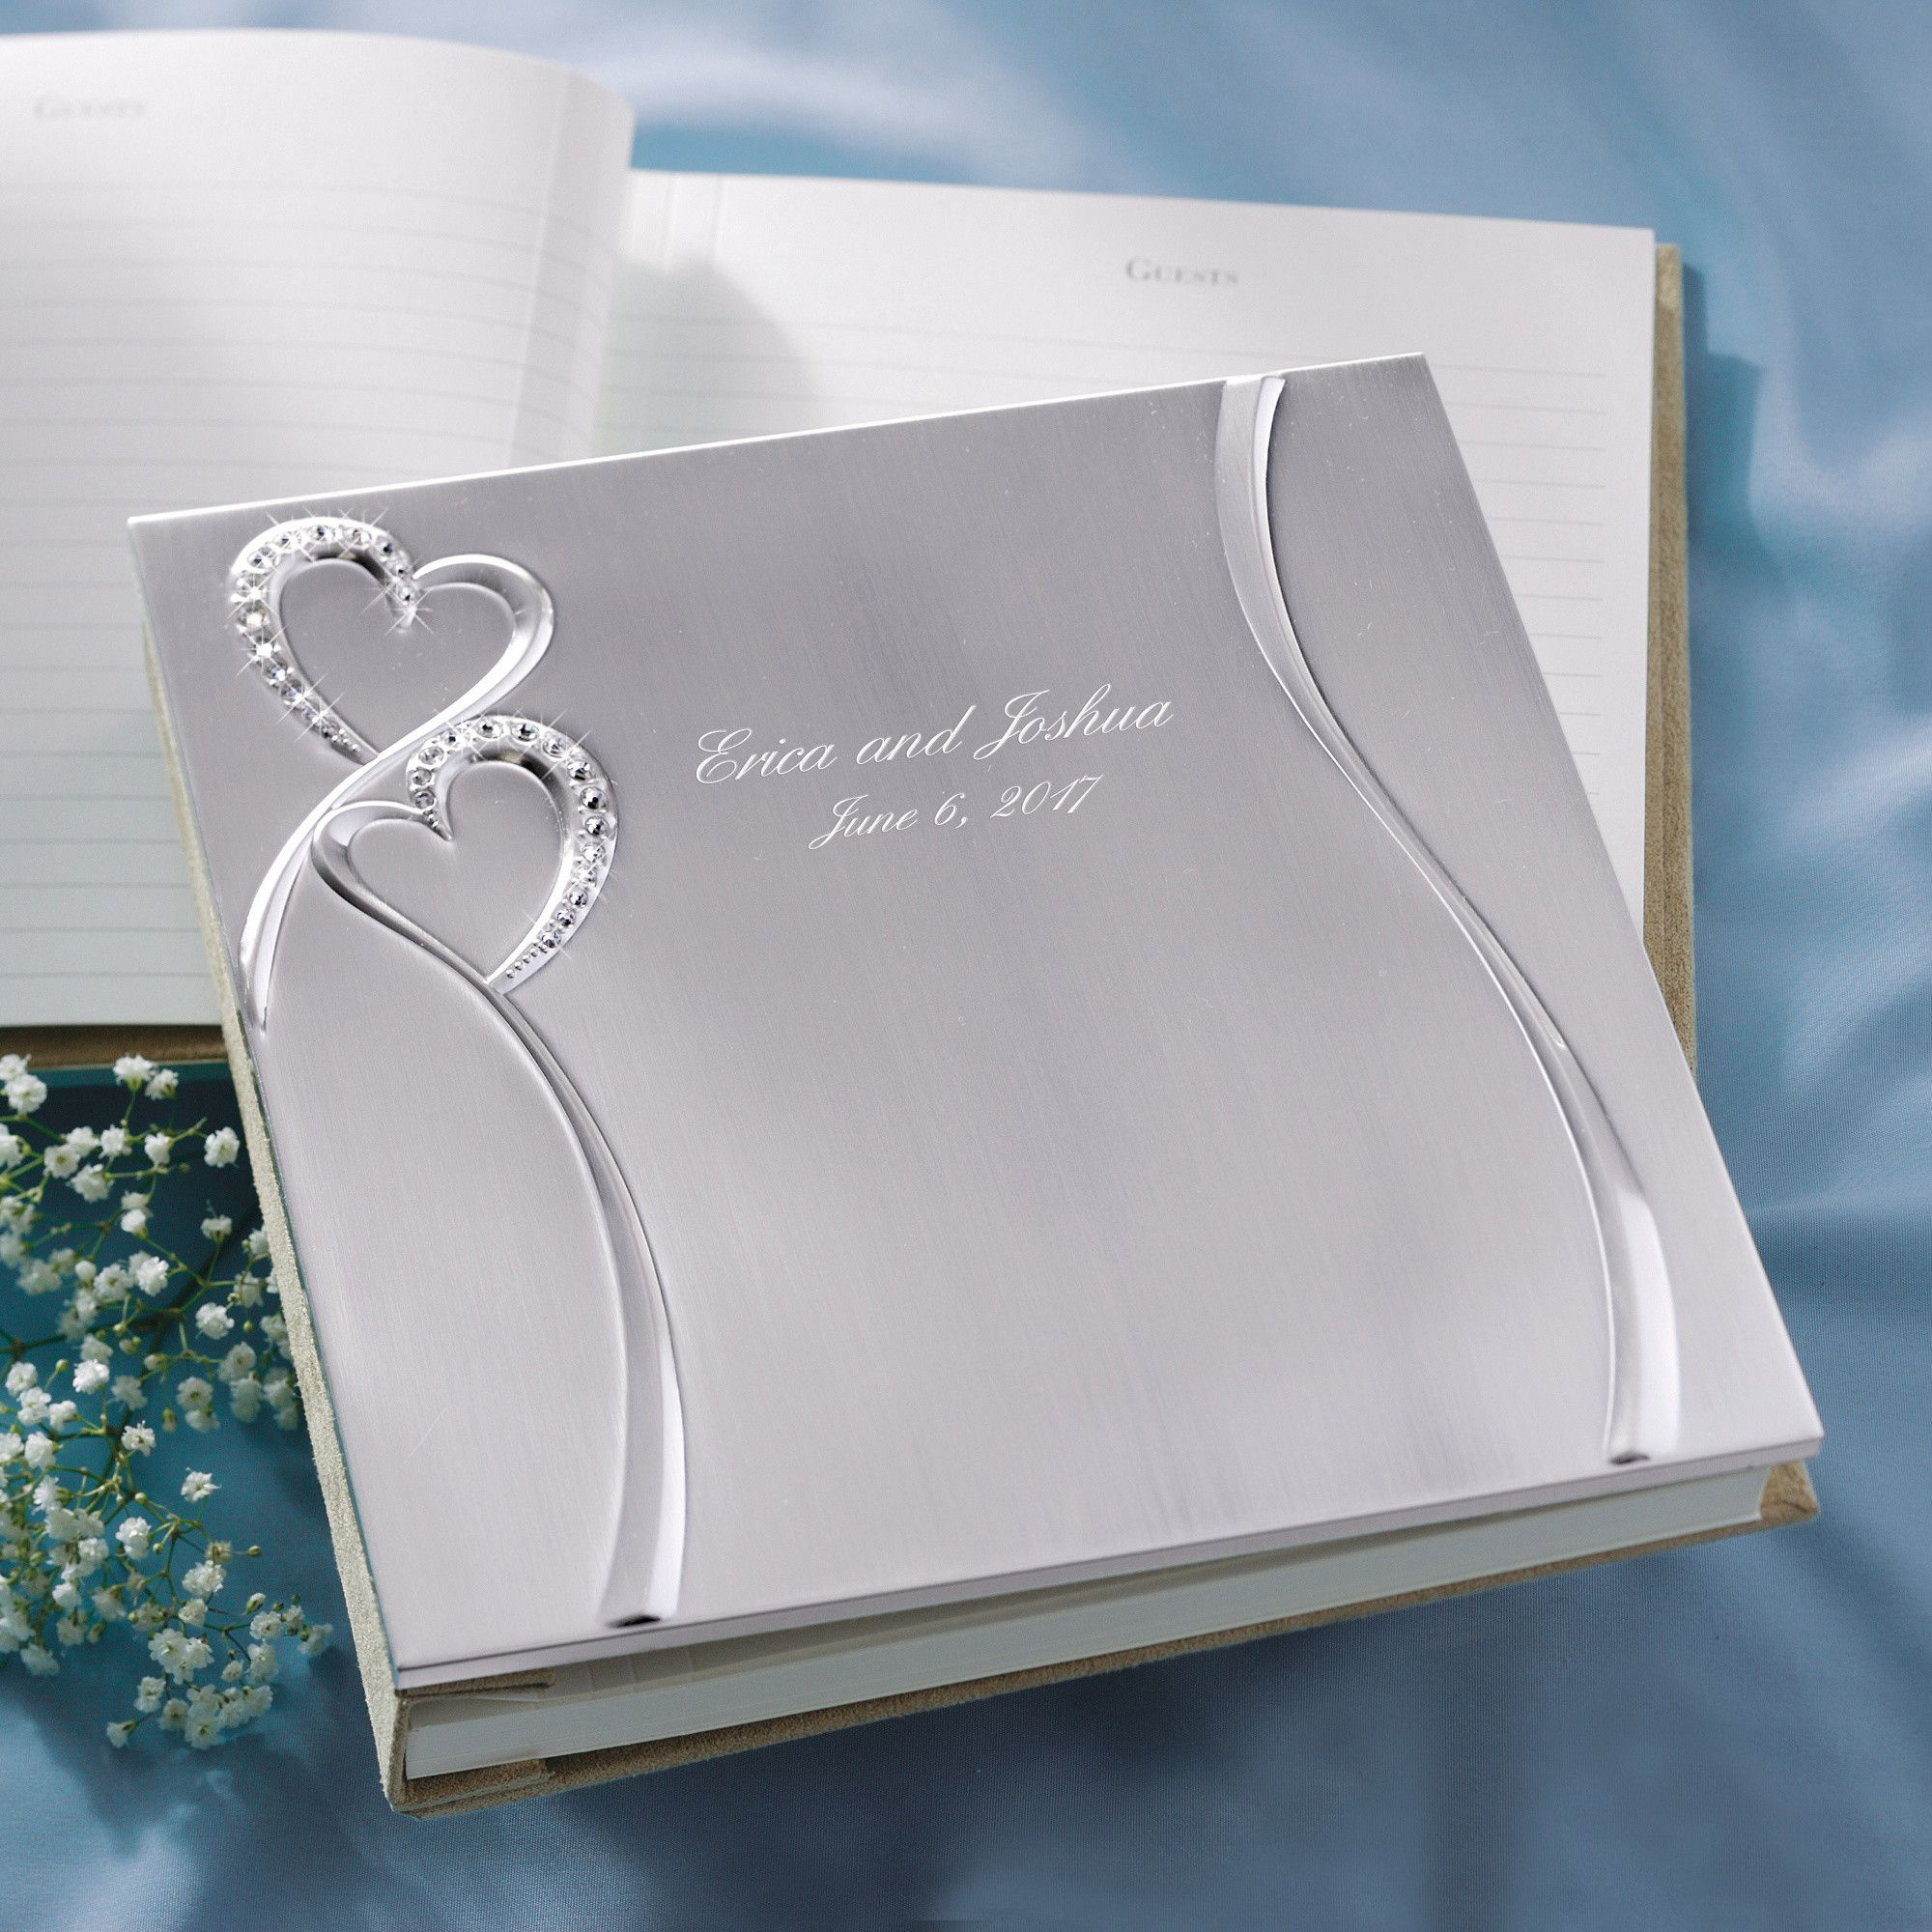 Twin Hearts Guest Book Wedding Reception Accessories